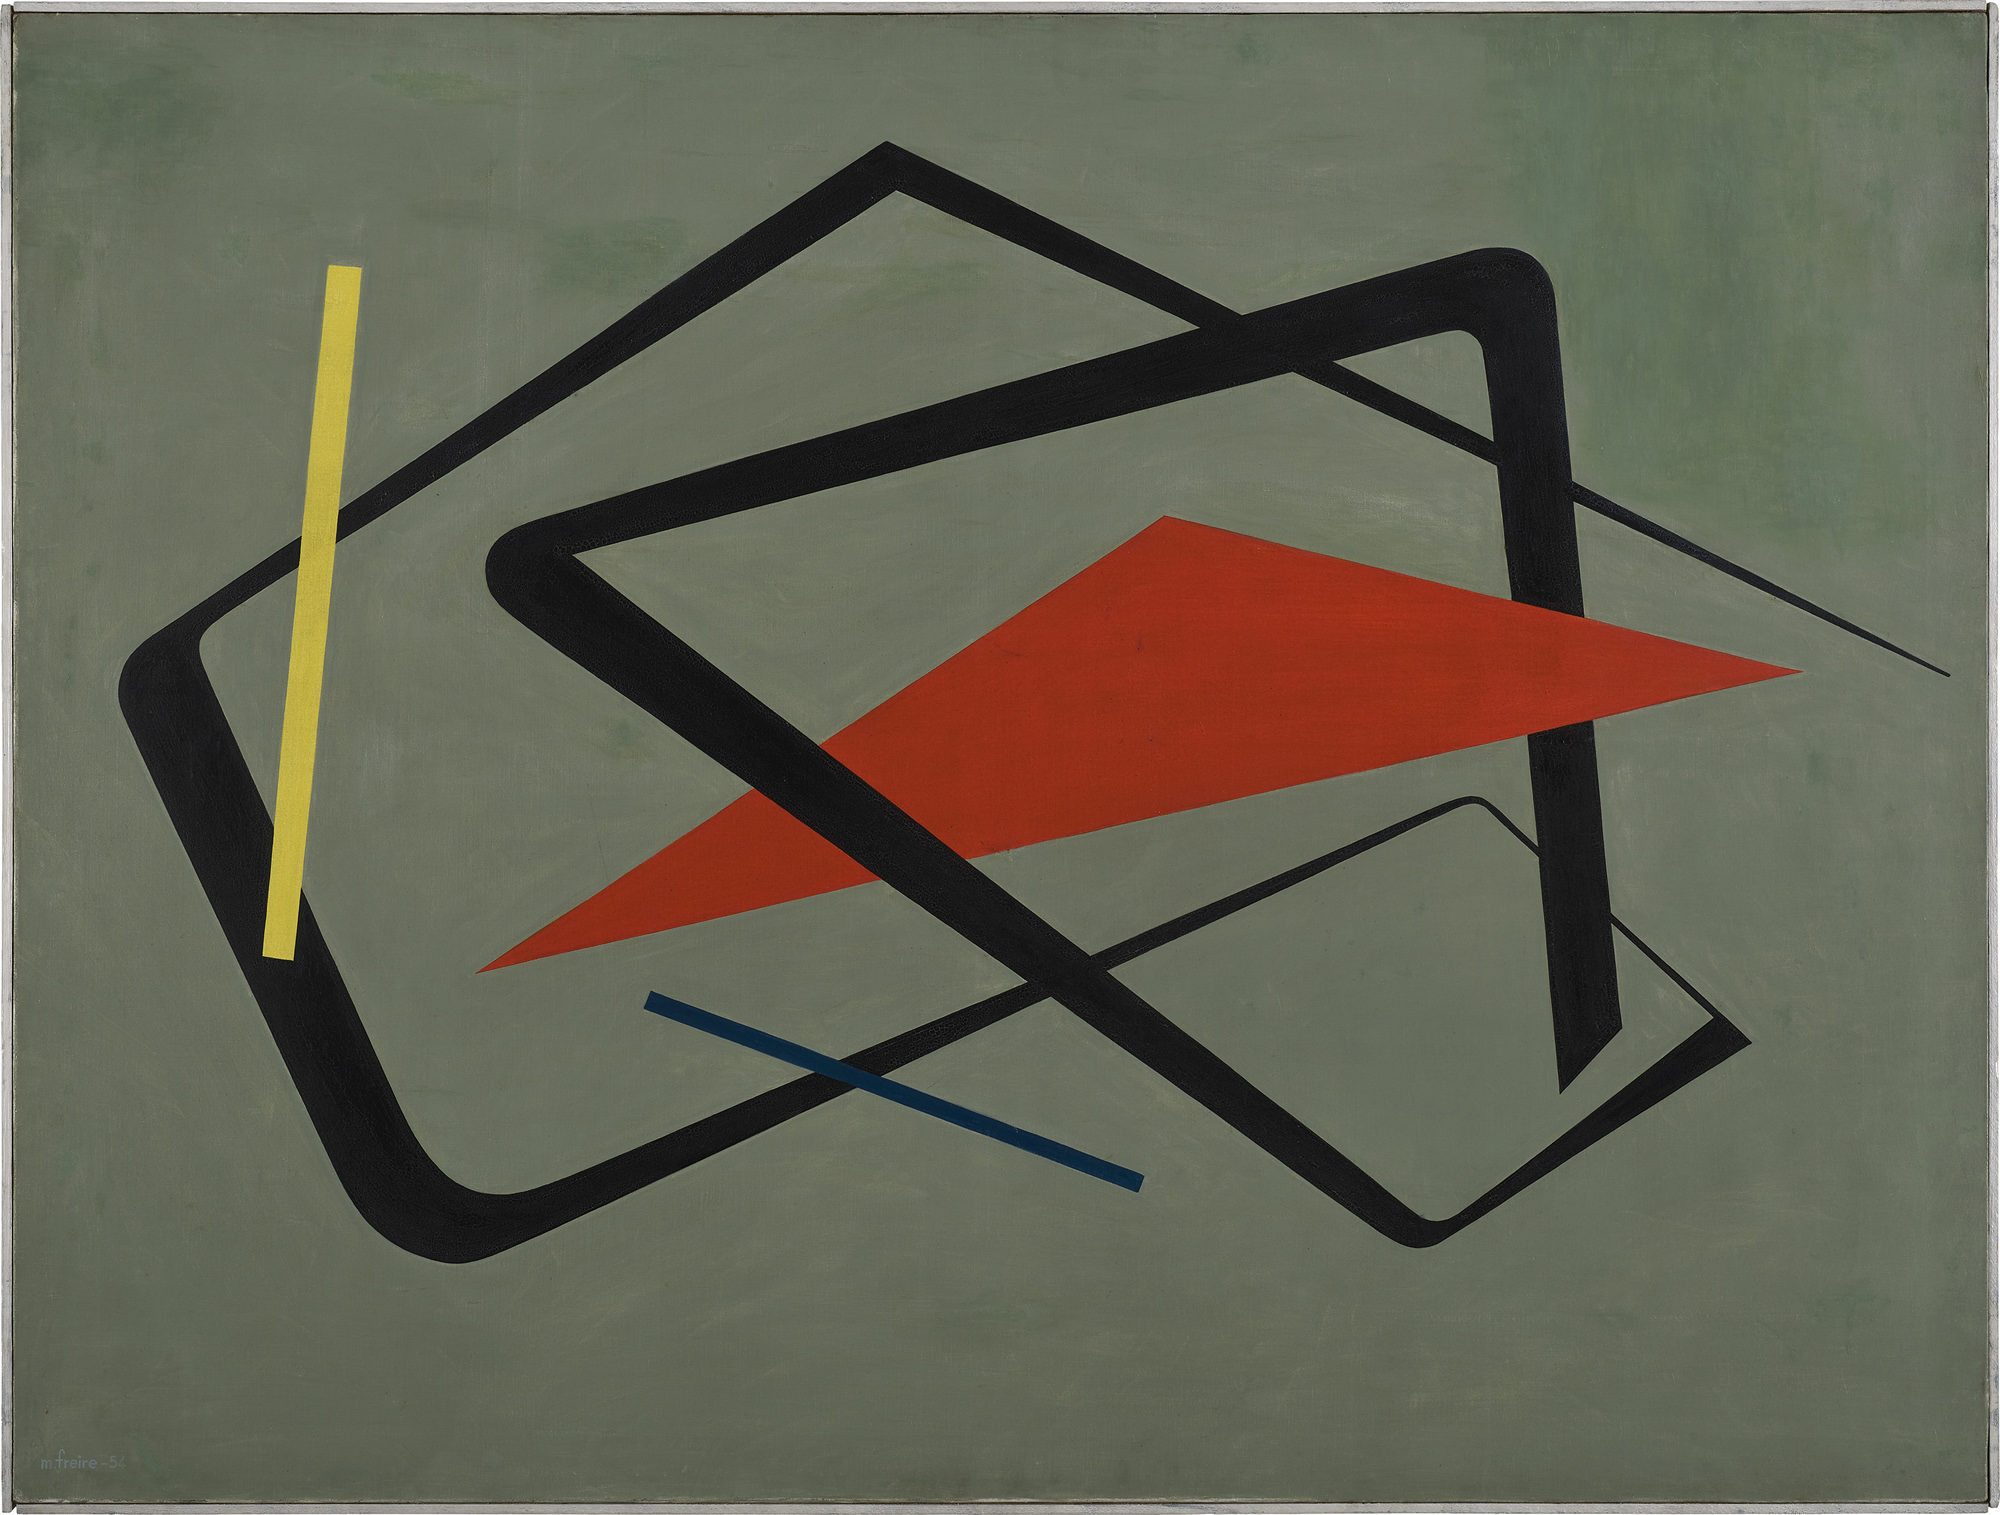 María Freire (Uruguayan, 1917–2015). Untitled. 1954. Oil on canvas, 36 1/4 × 48 1/16″ (92 × 122 cm). The Museum of Modern Art, New York.